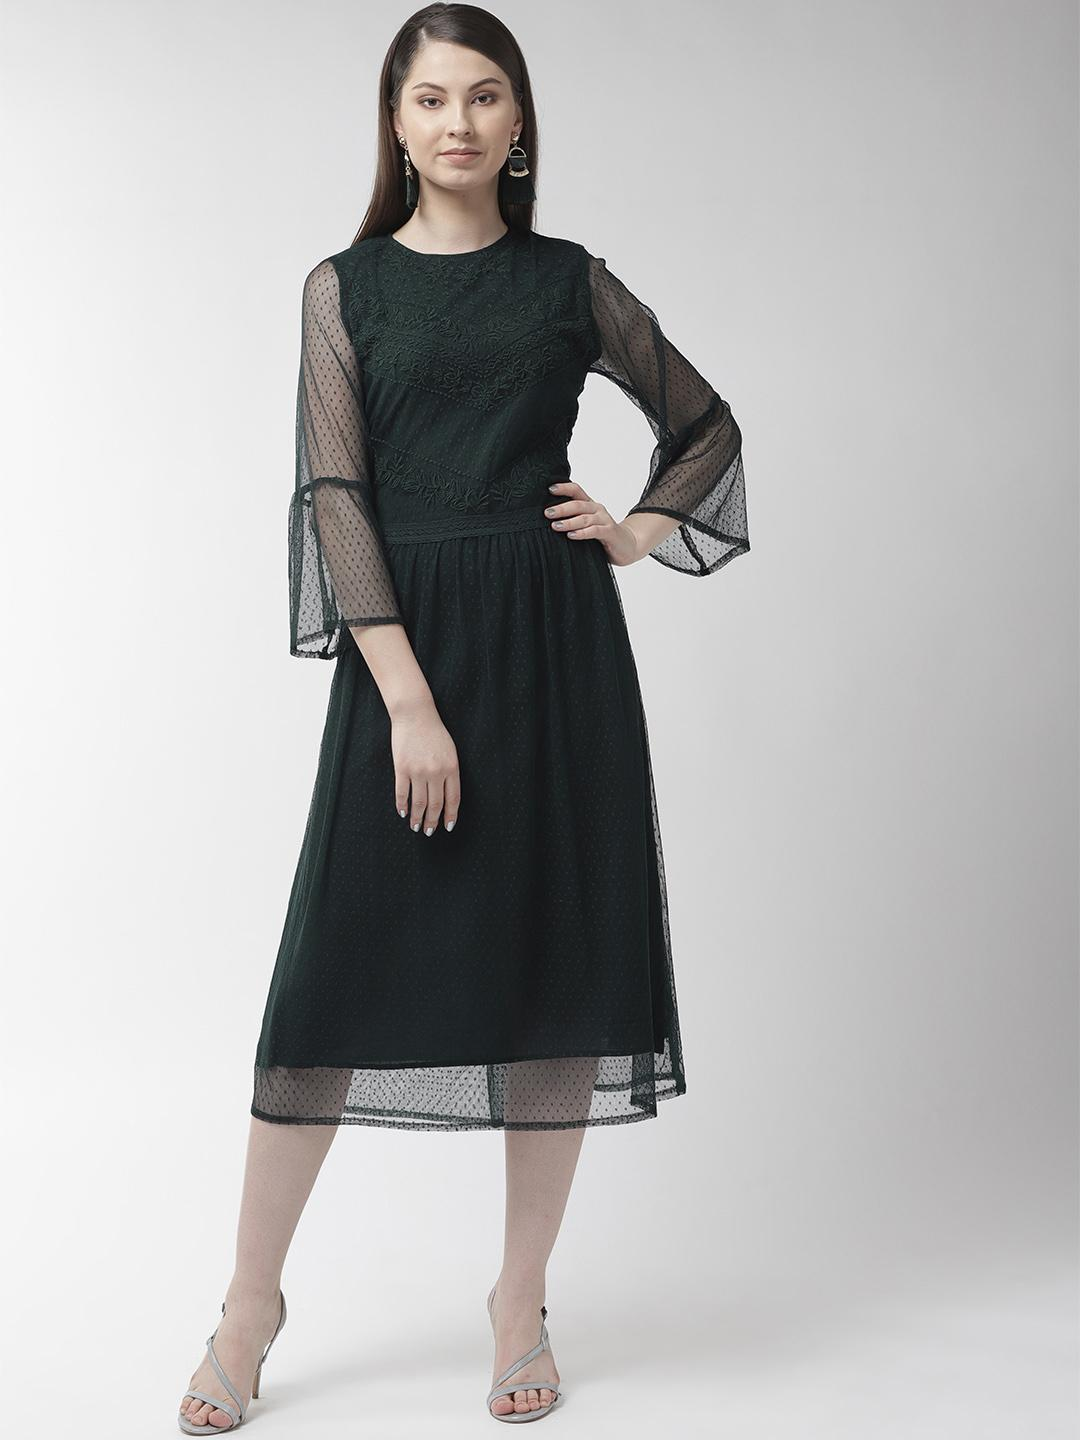 Green Buta Mesh Embroidered lace Insert Dress